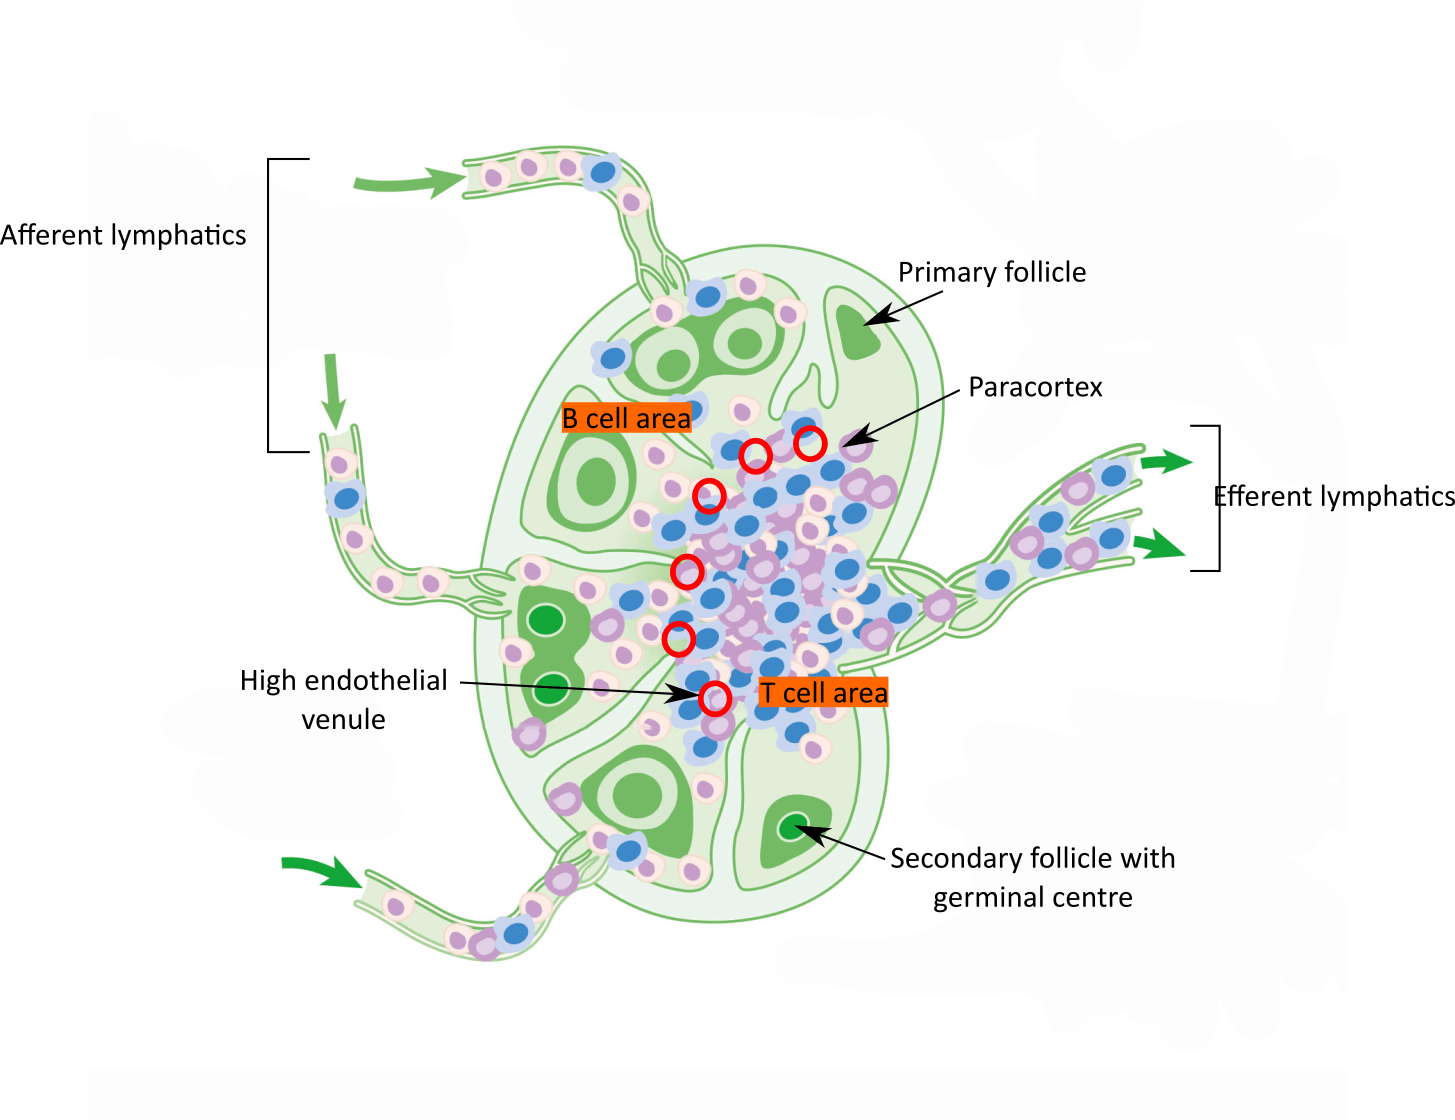 hight resolution of  andrewmeyerson cc by sa 4 0 https creativecommons org licenses by sa 4 0 from wikimedia commons diagram of lymph node structures